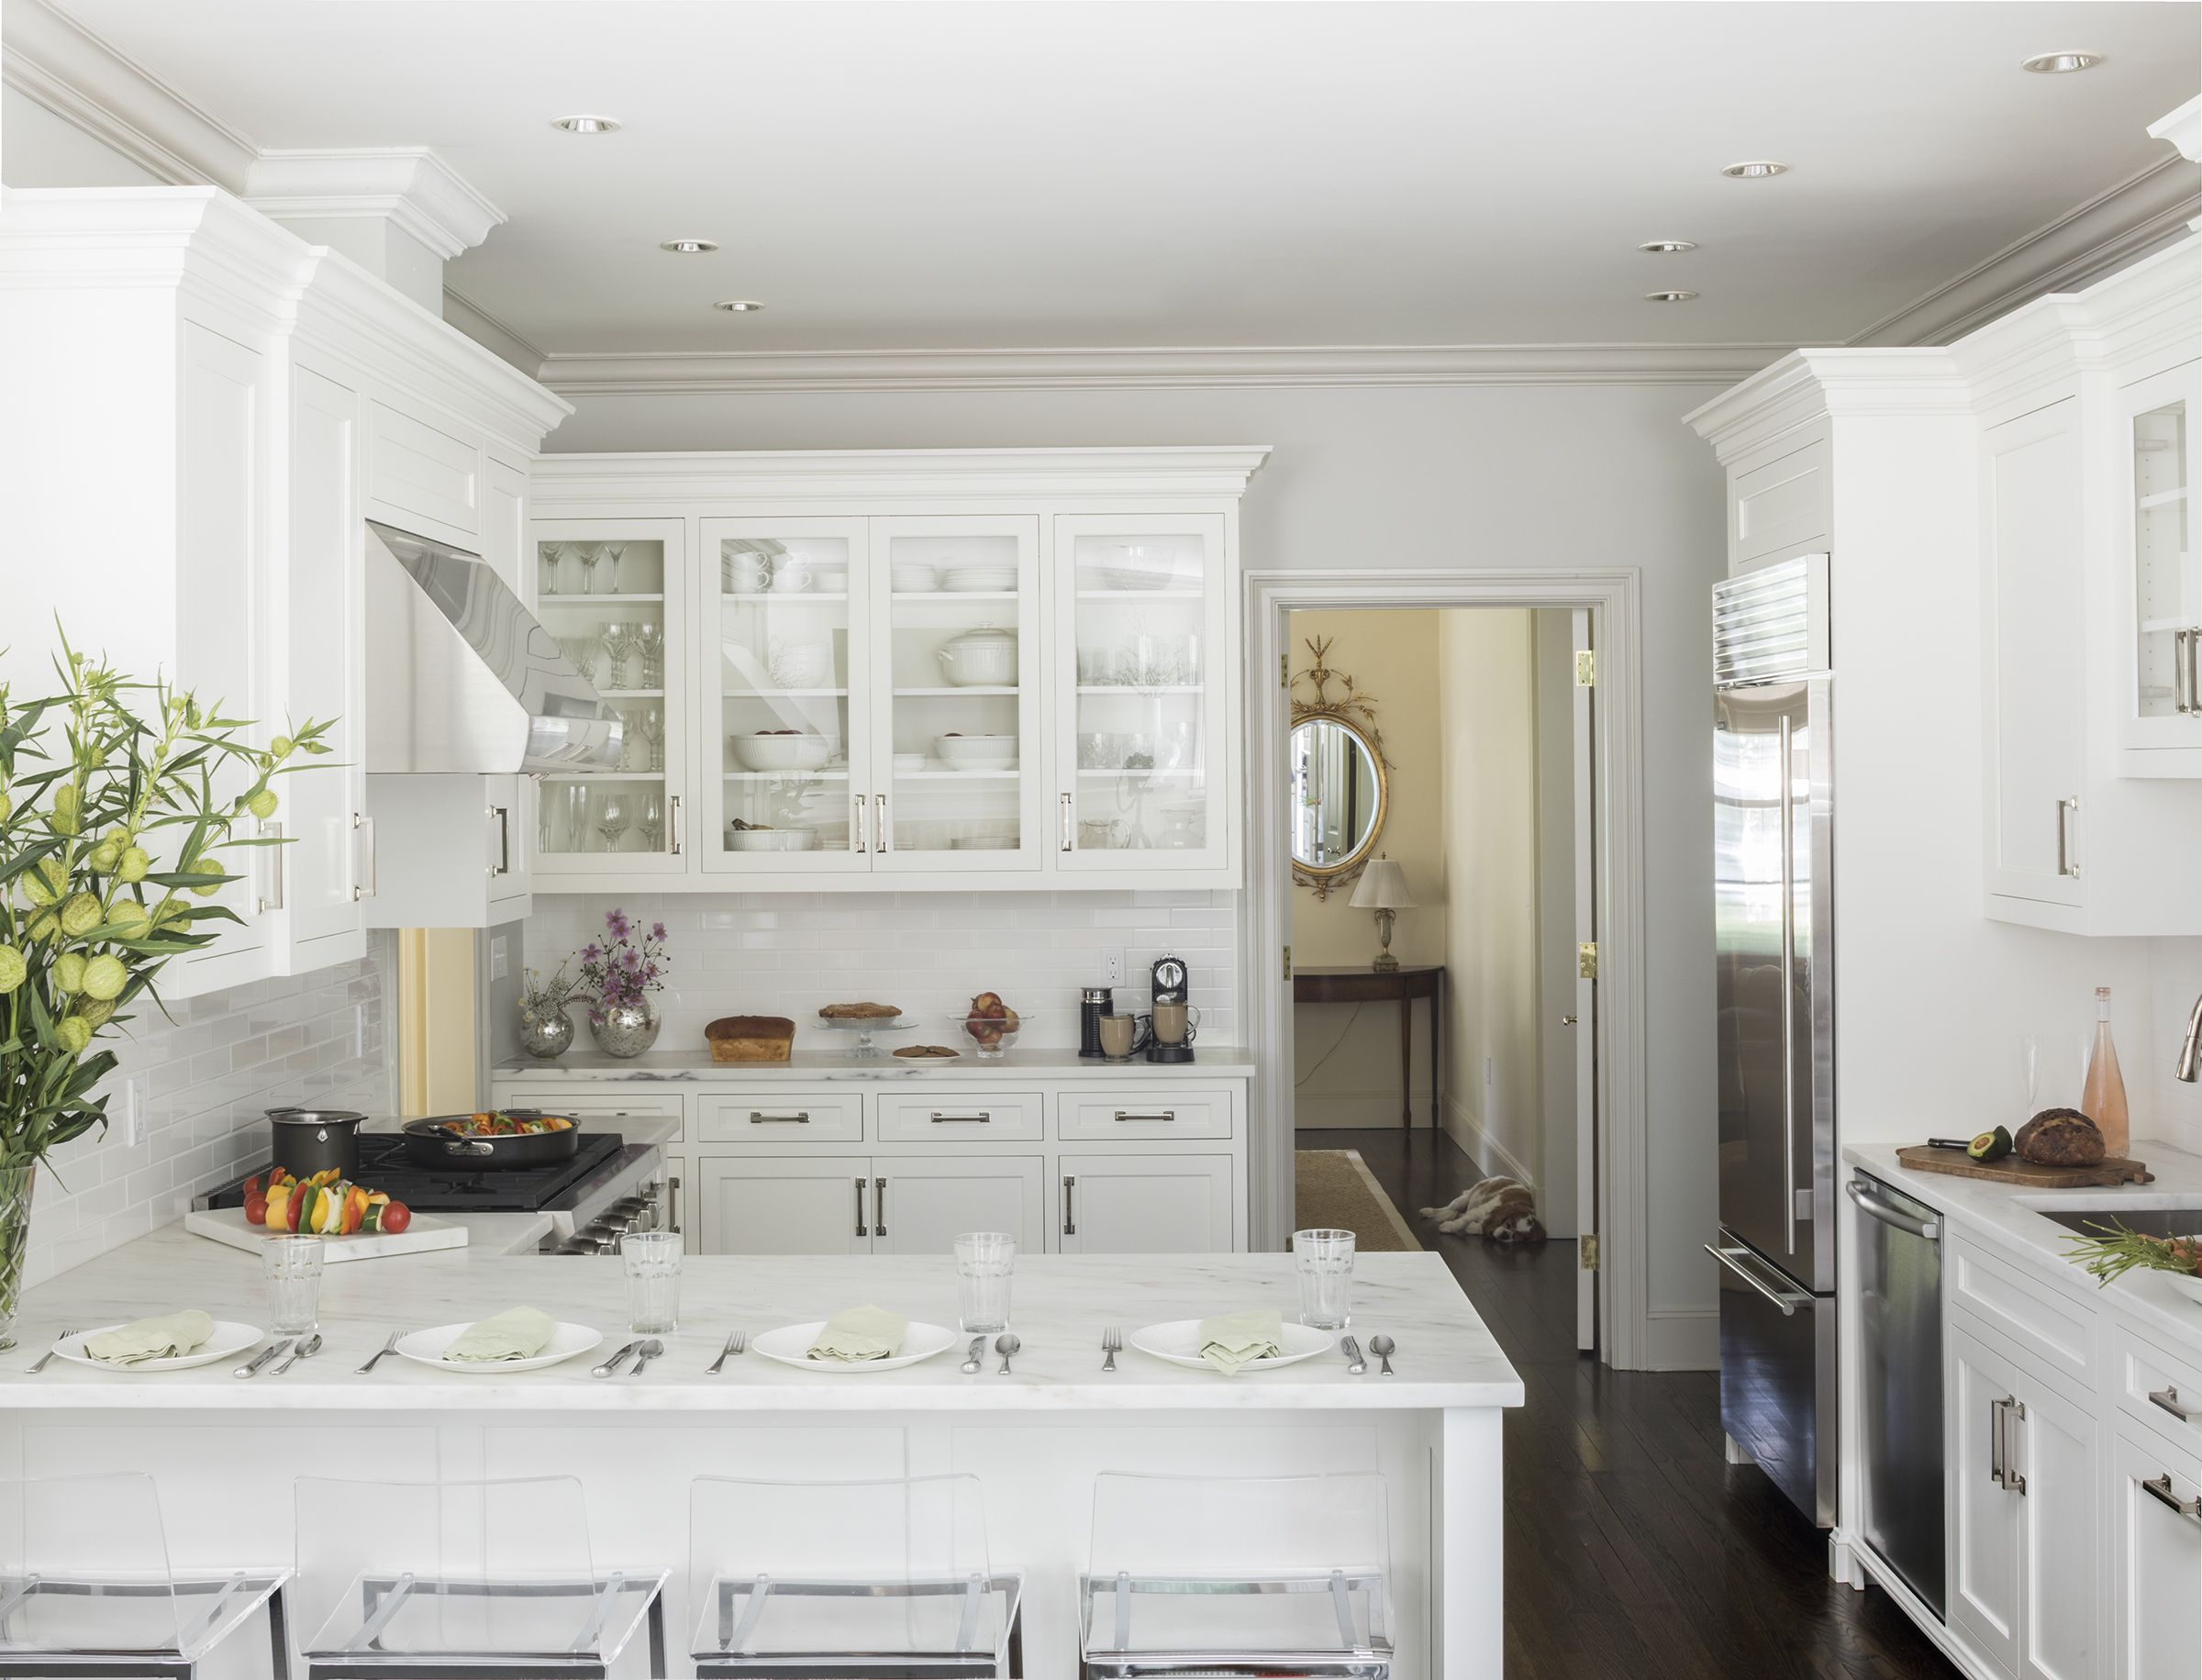 Kitchen Peninsula Ideas - 34 Gorgeous and Functional Kitchen ... on narrow kitchen islands, narrow electric fireplace, narrow kitchen cabinets,